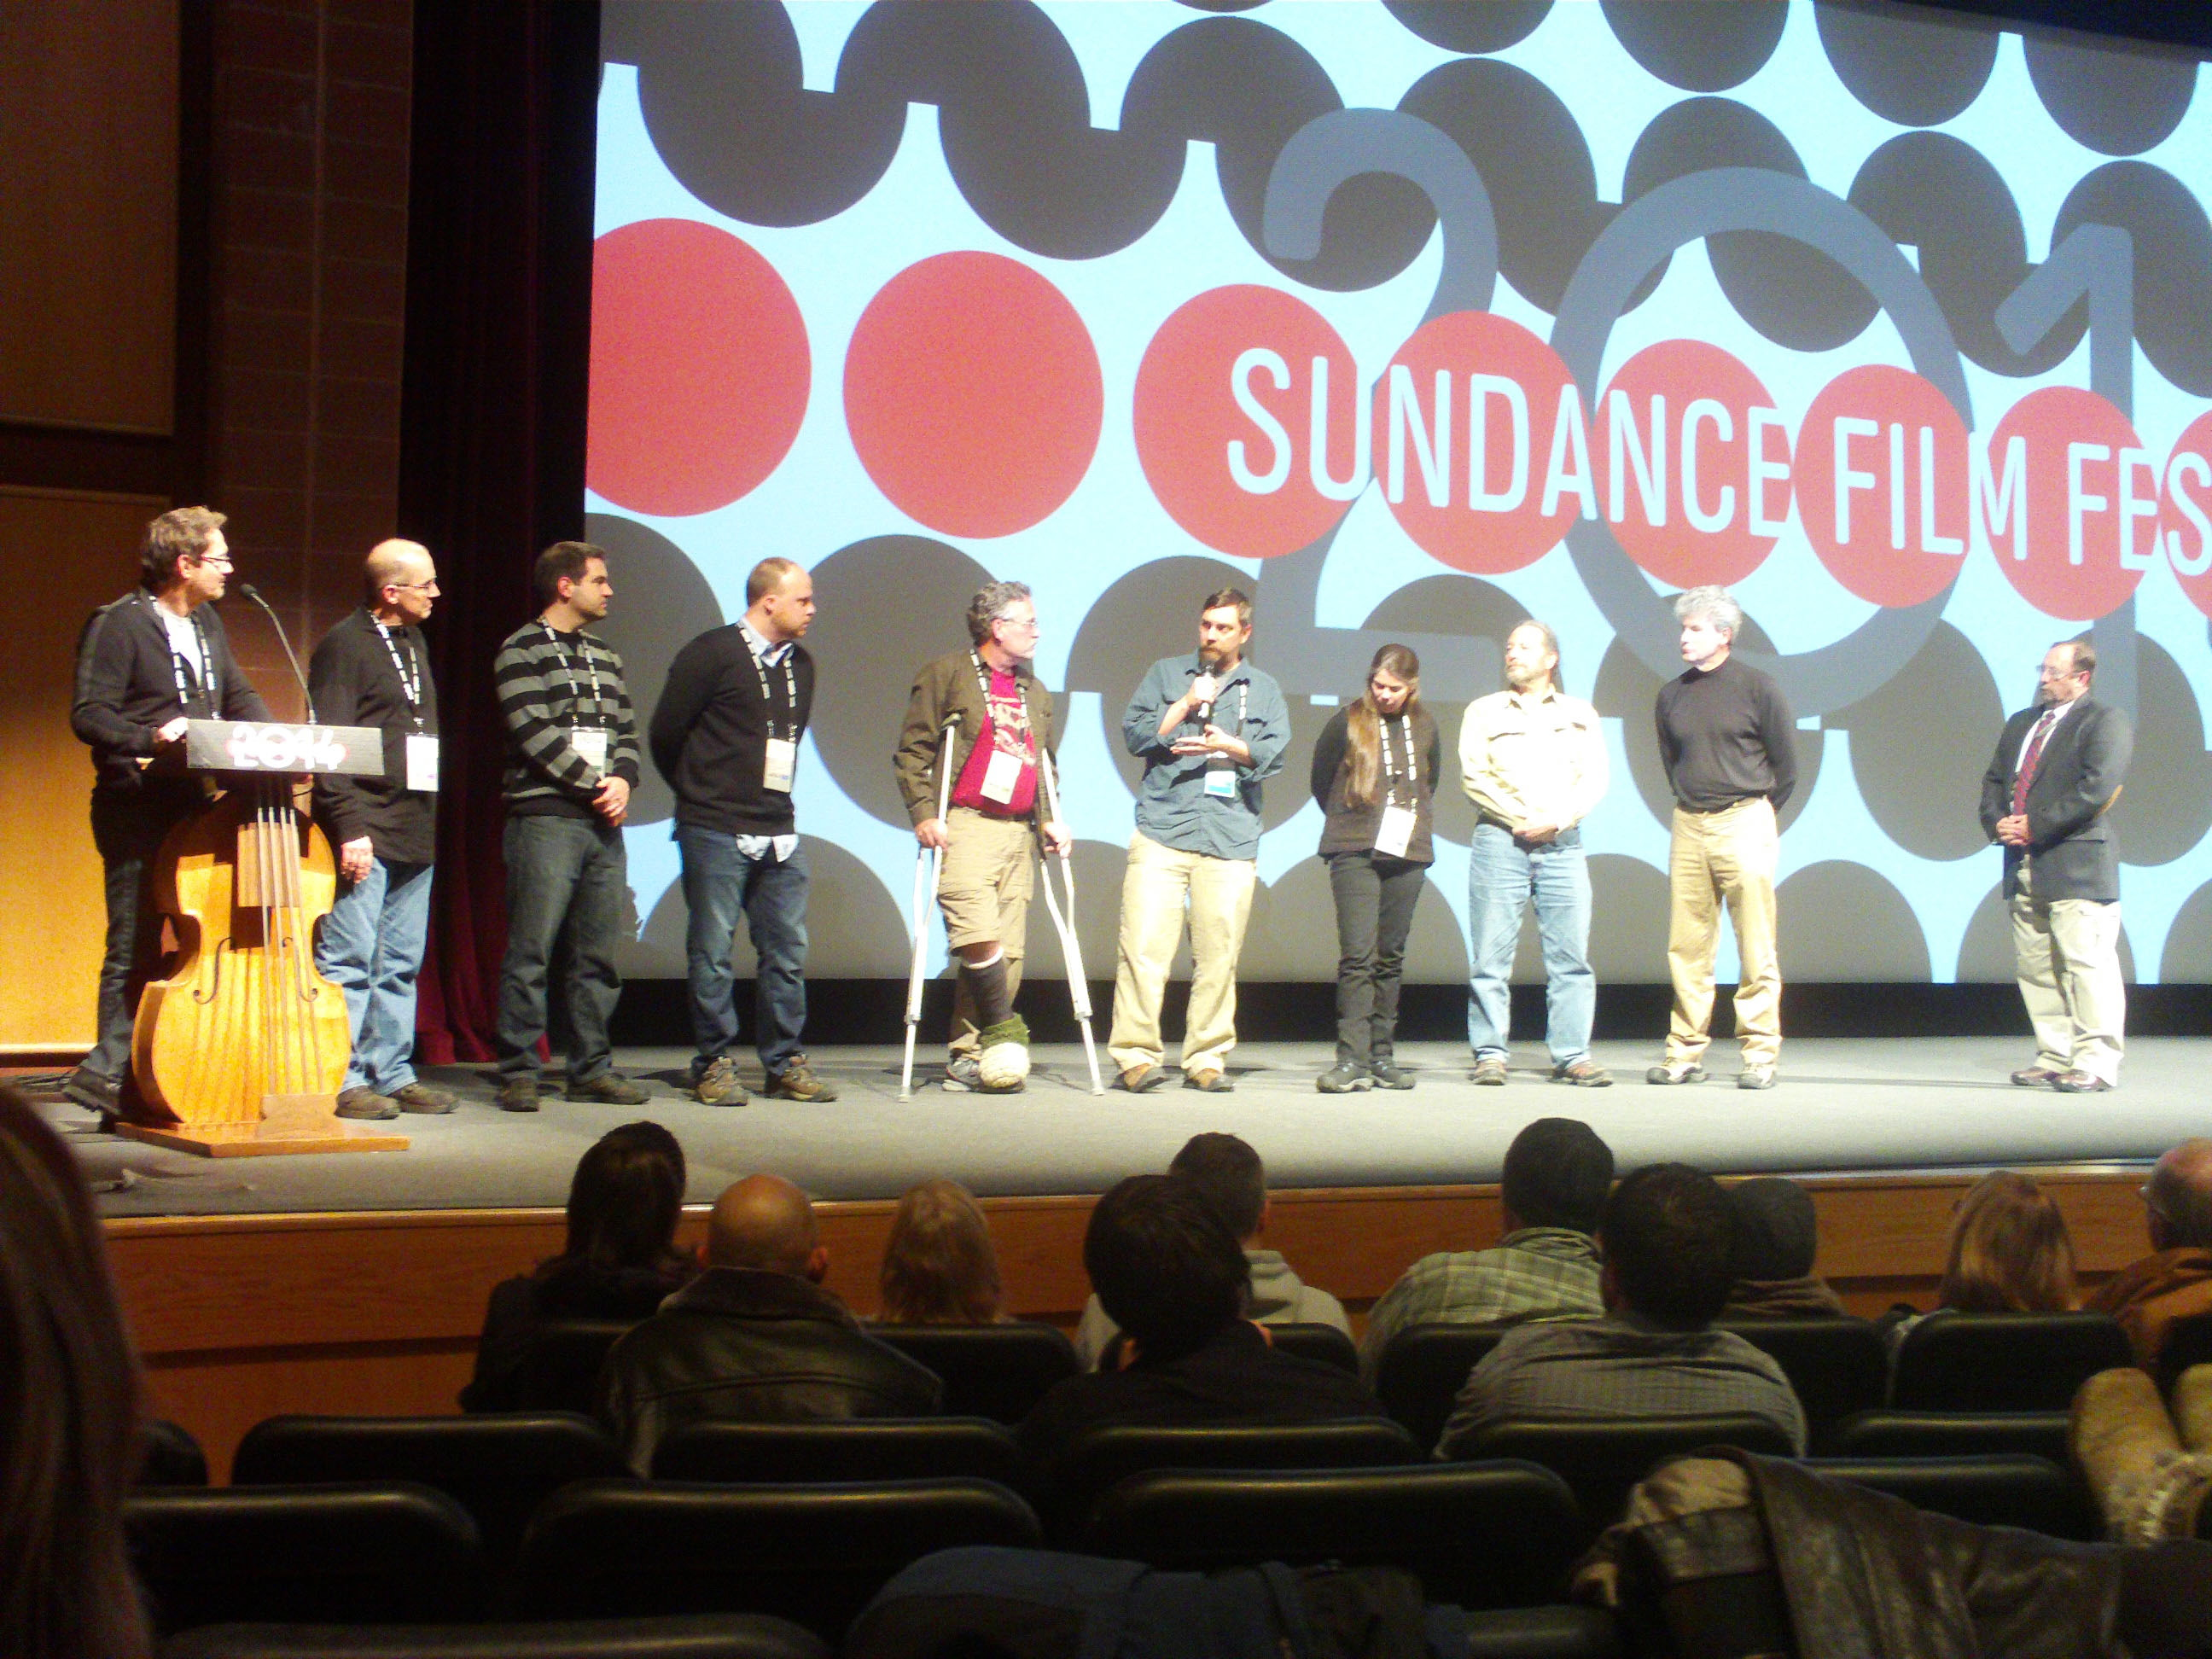 Opening night - Sundance.